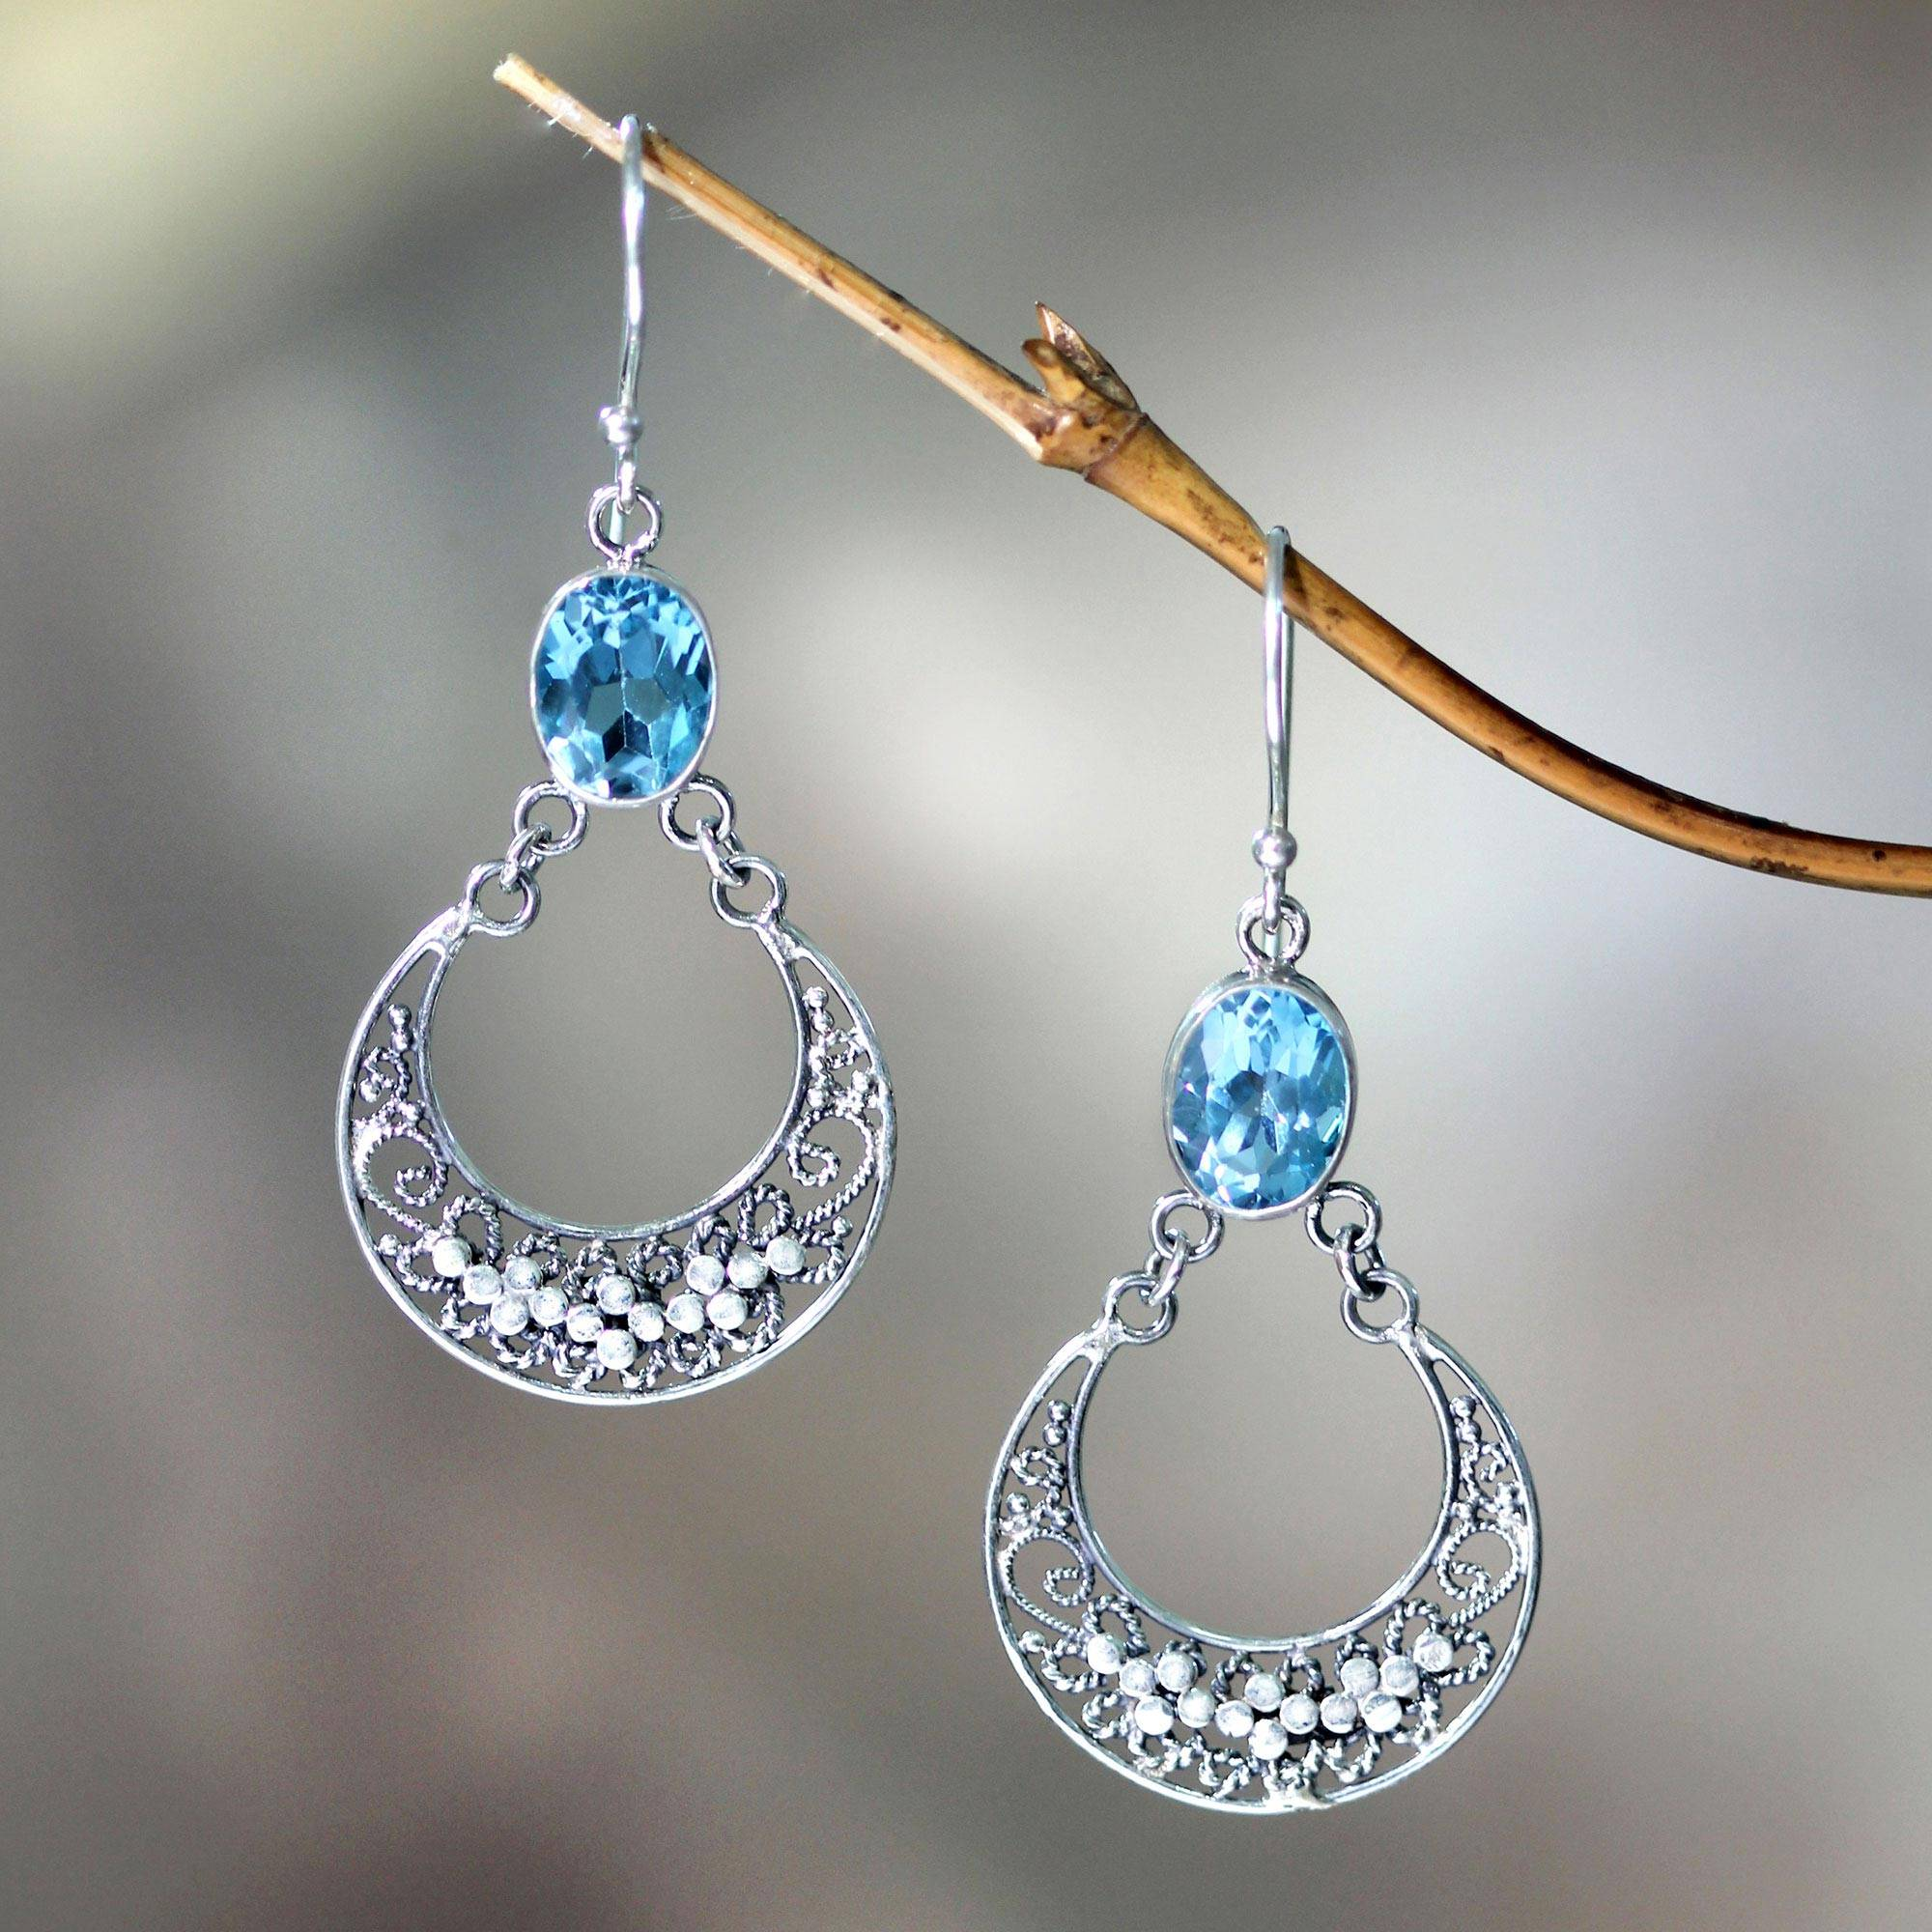 Sumatra Moons Unique Sterling Silver and Blue Topaz Dangle Earrings What are birthstones